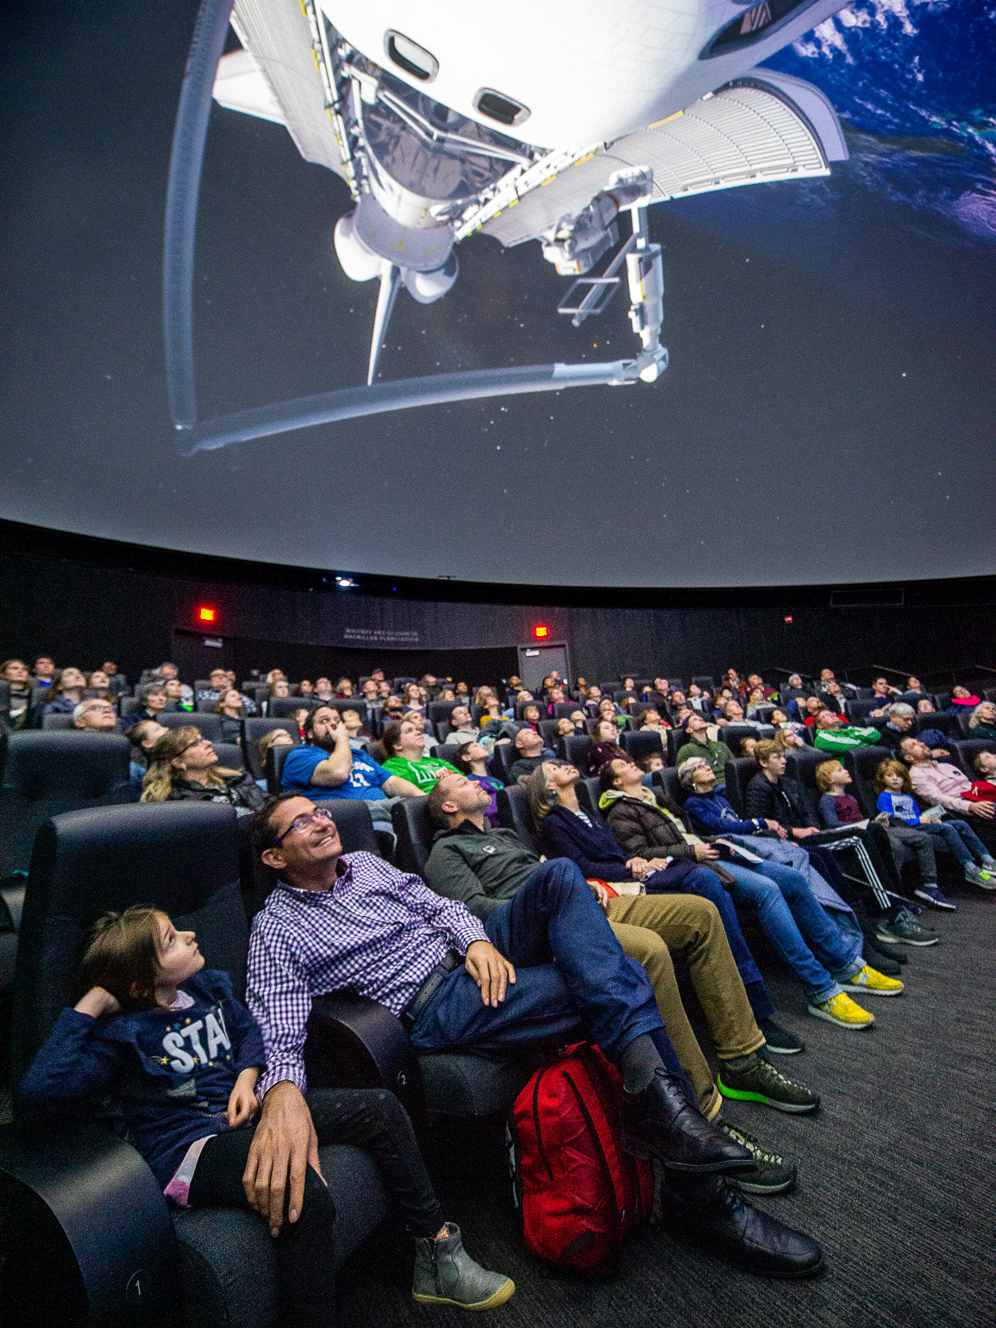 A planetarium audience watches a show